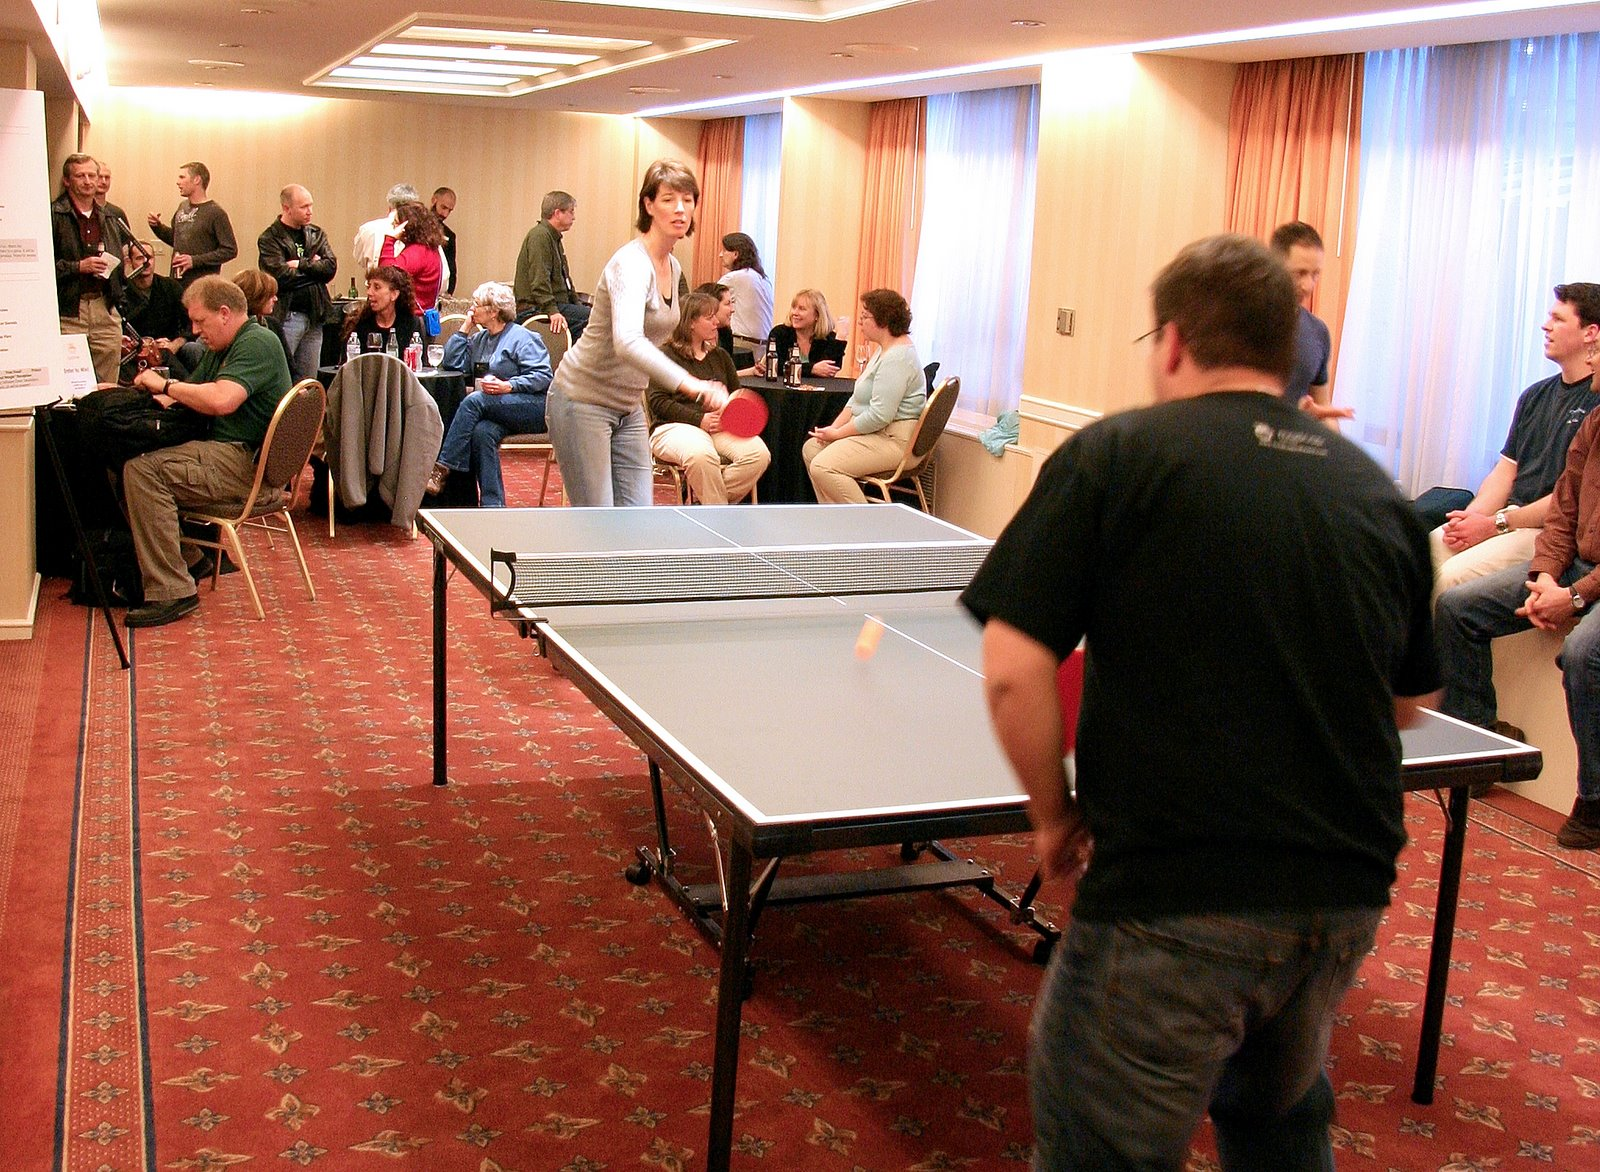 MadCap Software Ping Pong Party